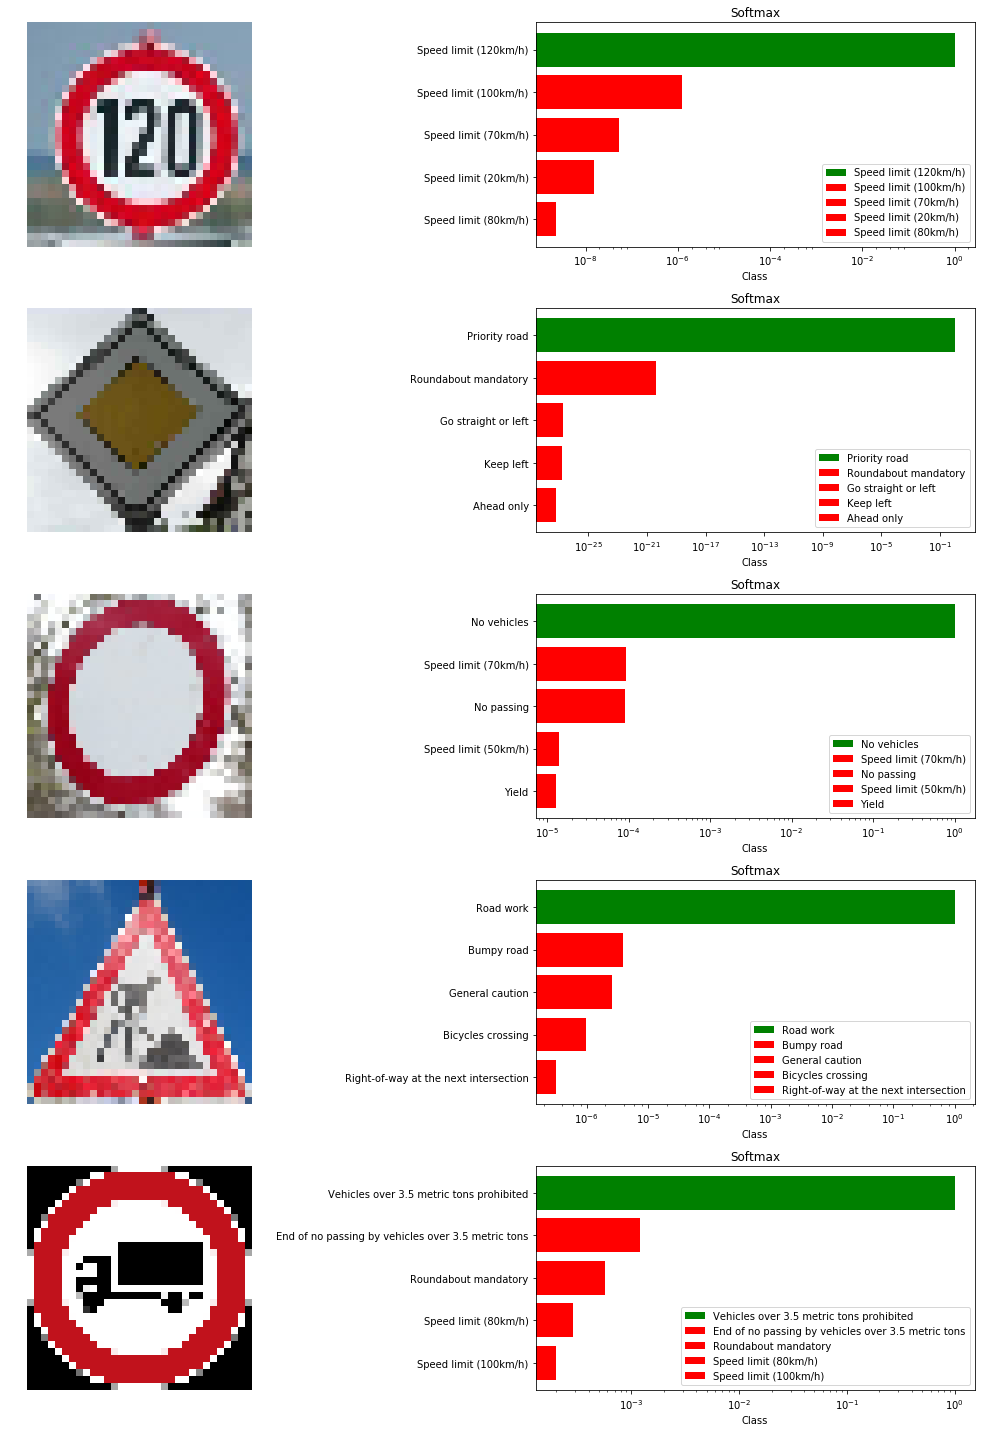 Recognising Traffic Signs With 98% Accuracy Using Deep Learning